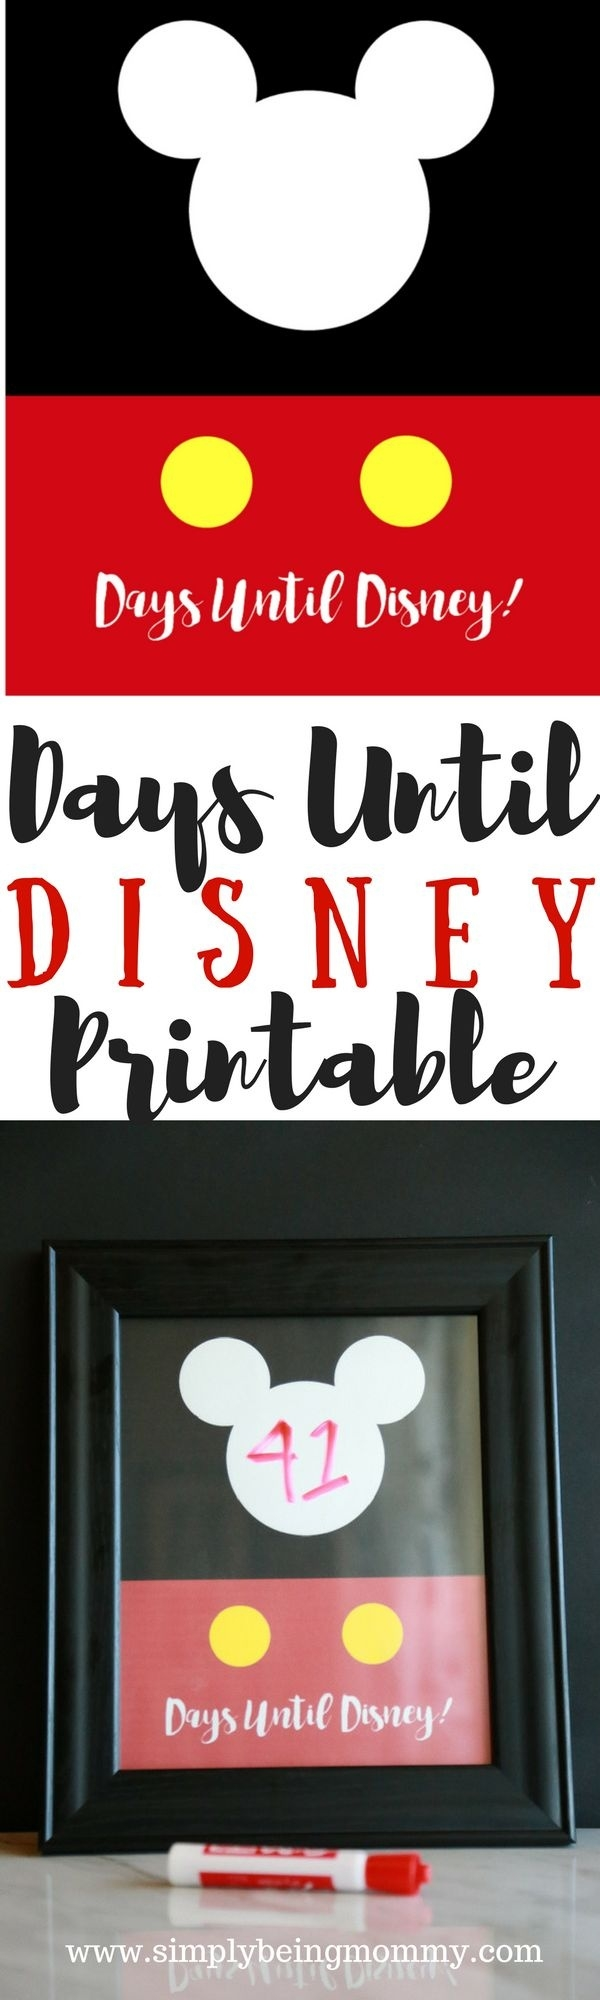 99 Days To Disney Printable Calendar | Calendar Template Printable  99 Days To Disney Printable Calendar